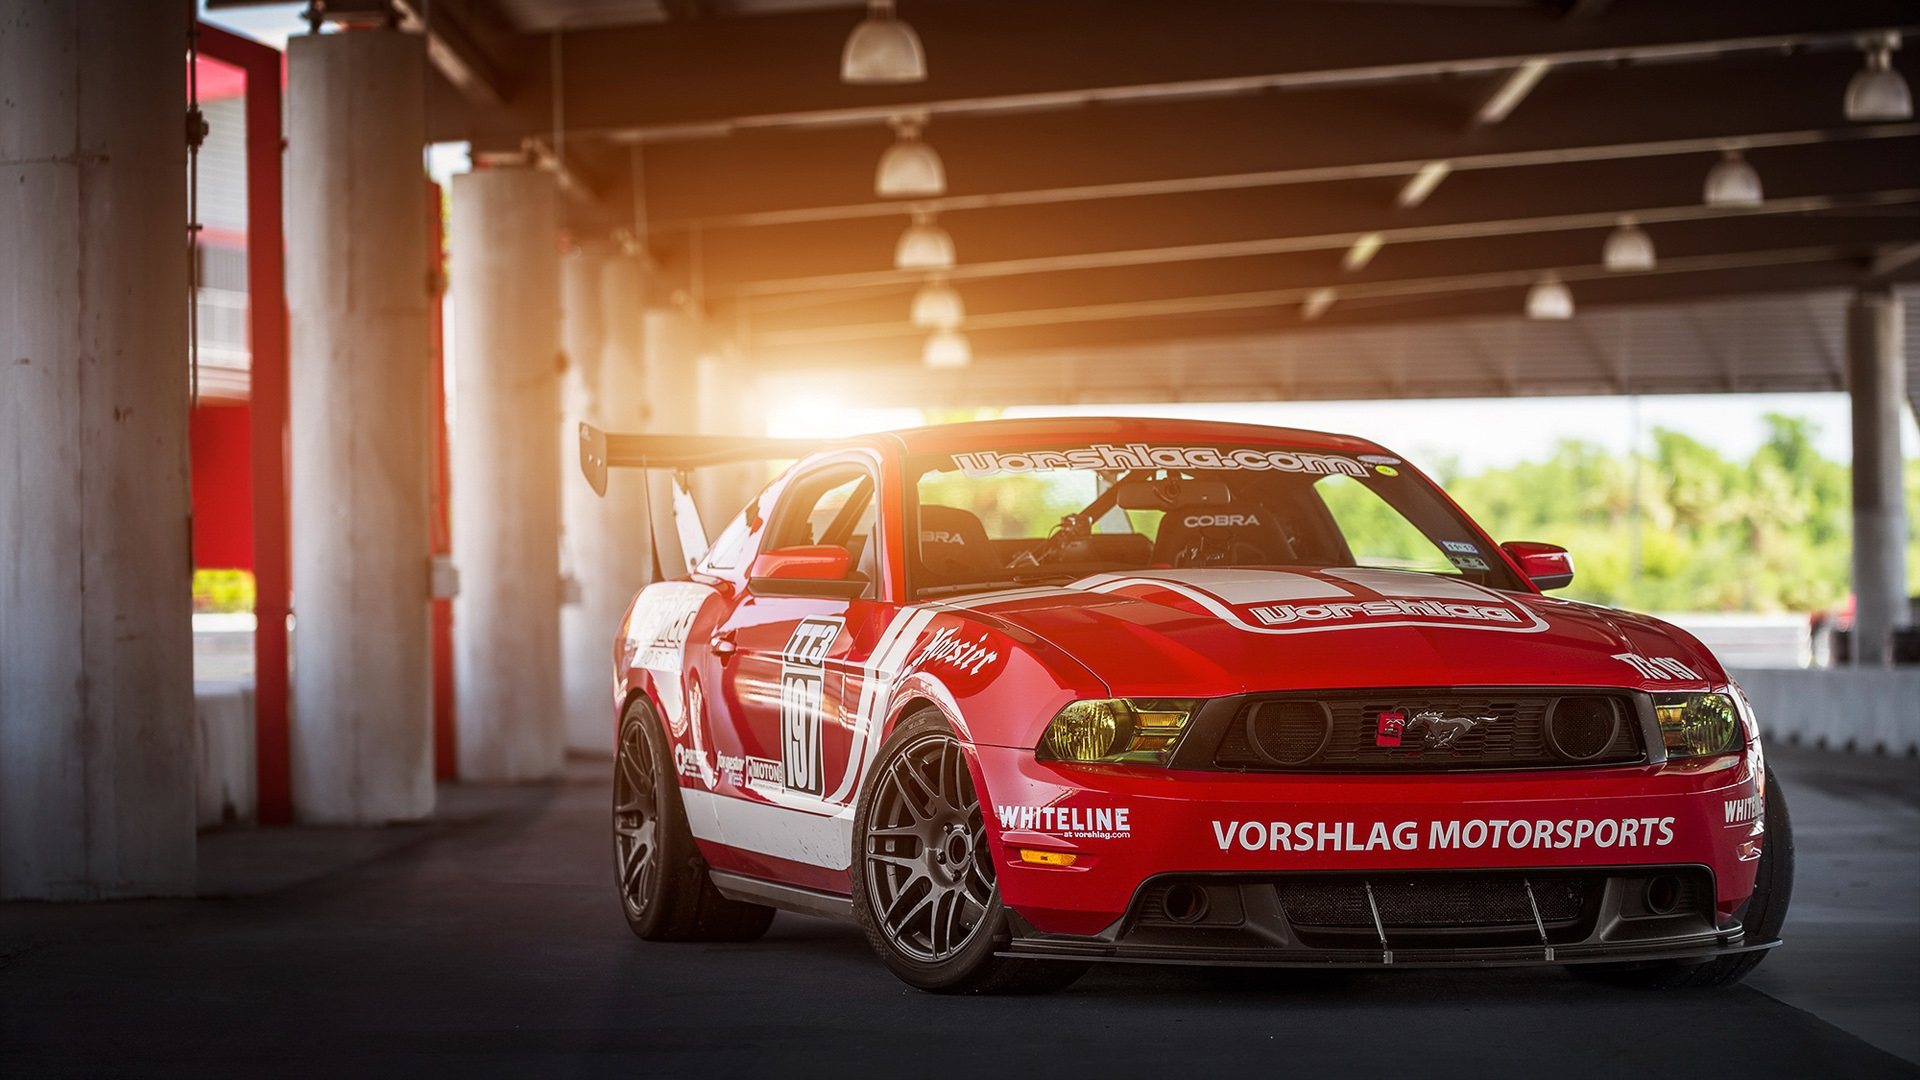 Wallpaper Red Ford Mustang Muscle Car 1920x1080 Full Hd 2k